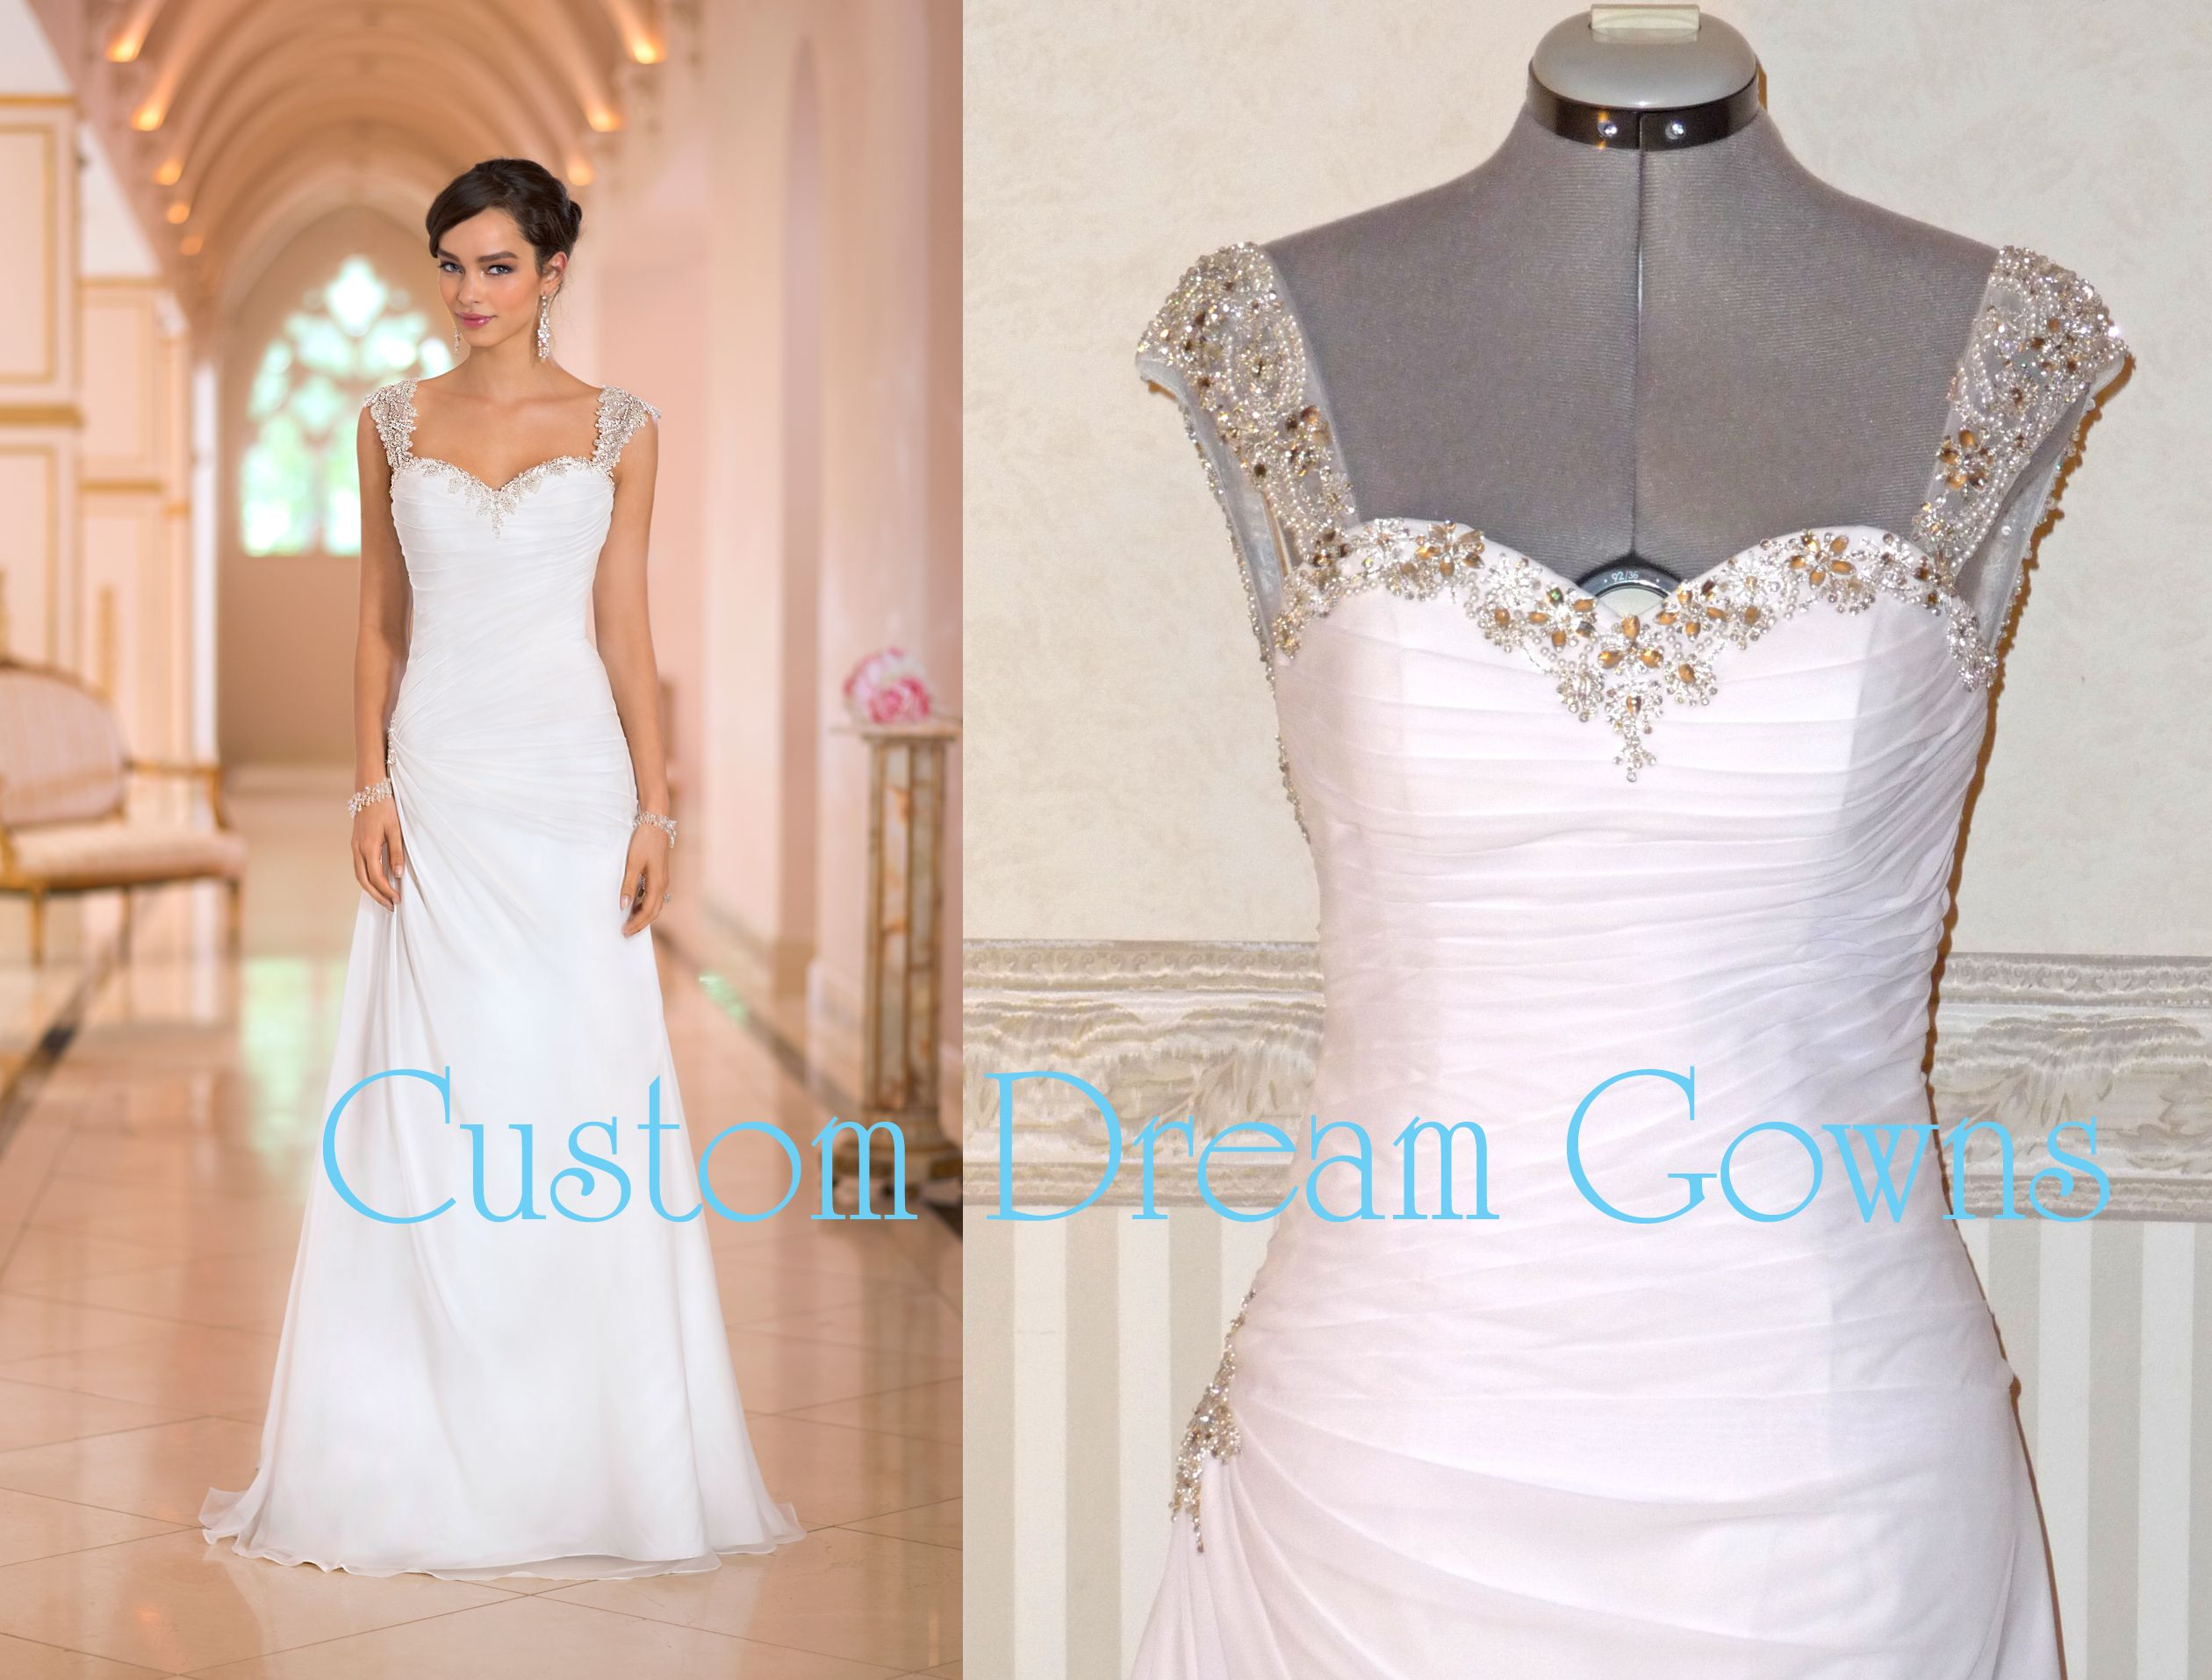 Crystal Beaded Sweetheart Neckline And Shoulder Straps